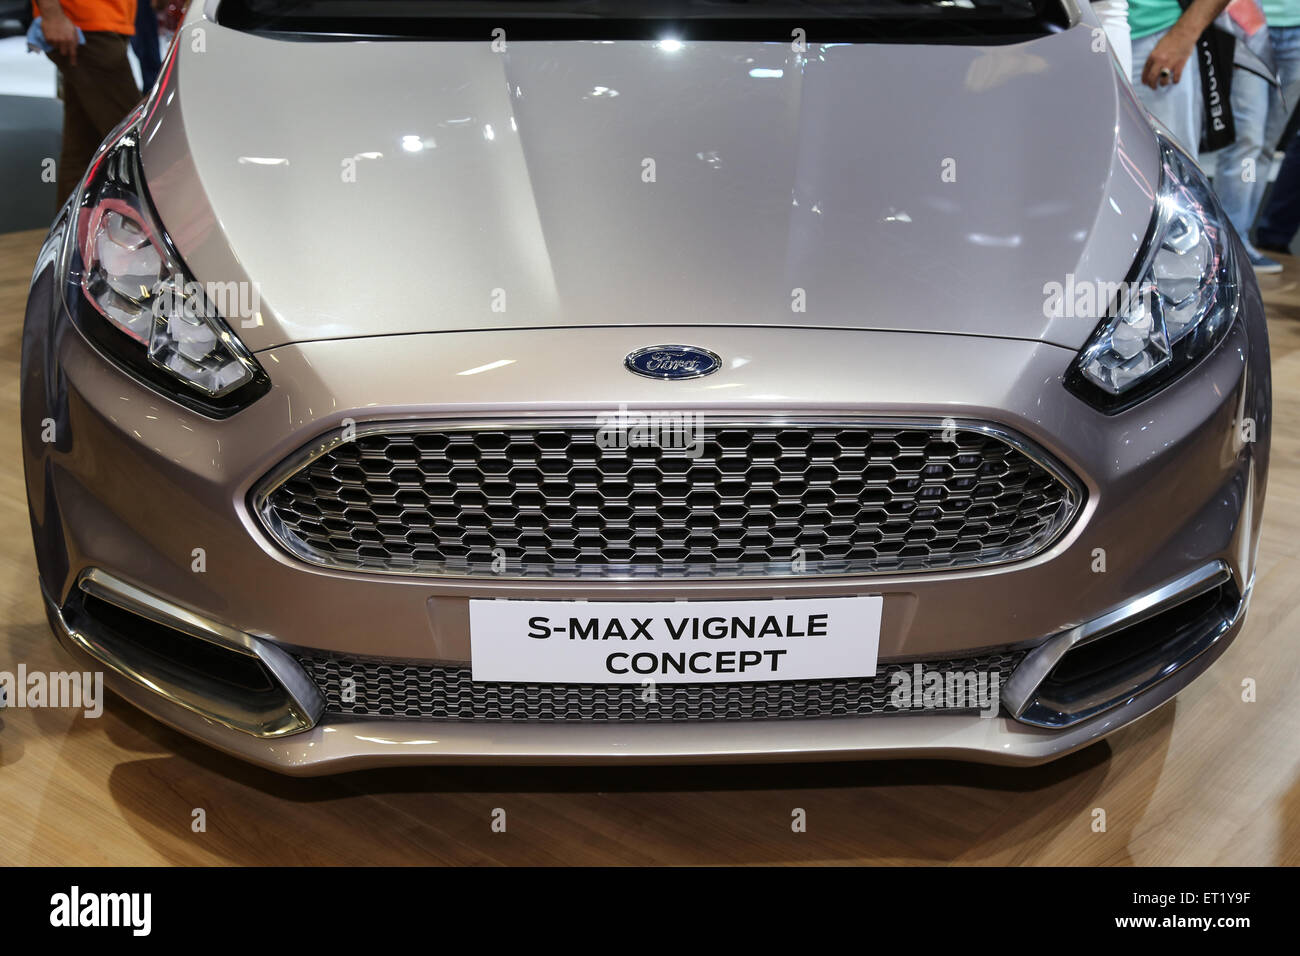 ISTANBUL, TURKEY - MAY 30, 2015: Ford S-Max Vignale Concept in Istanbul Autoshow 2015 - Stock Image